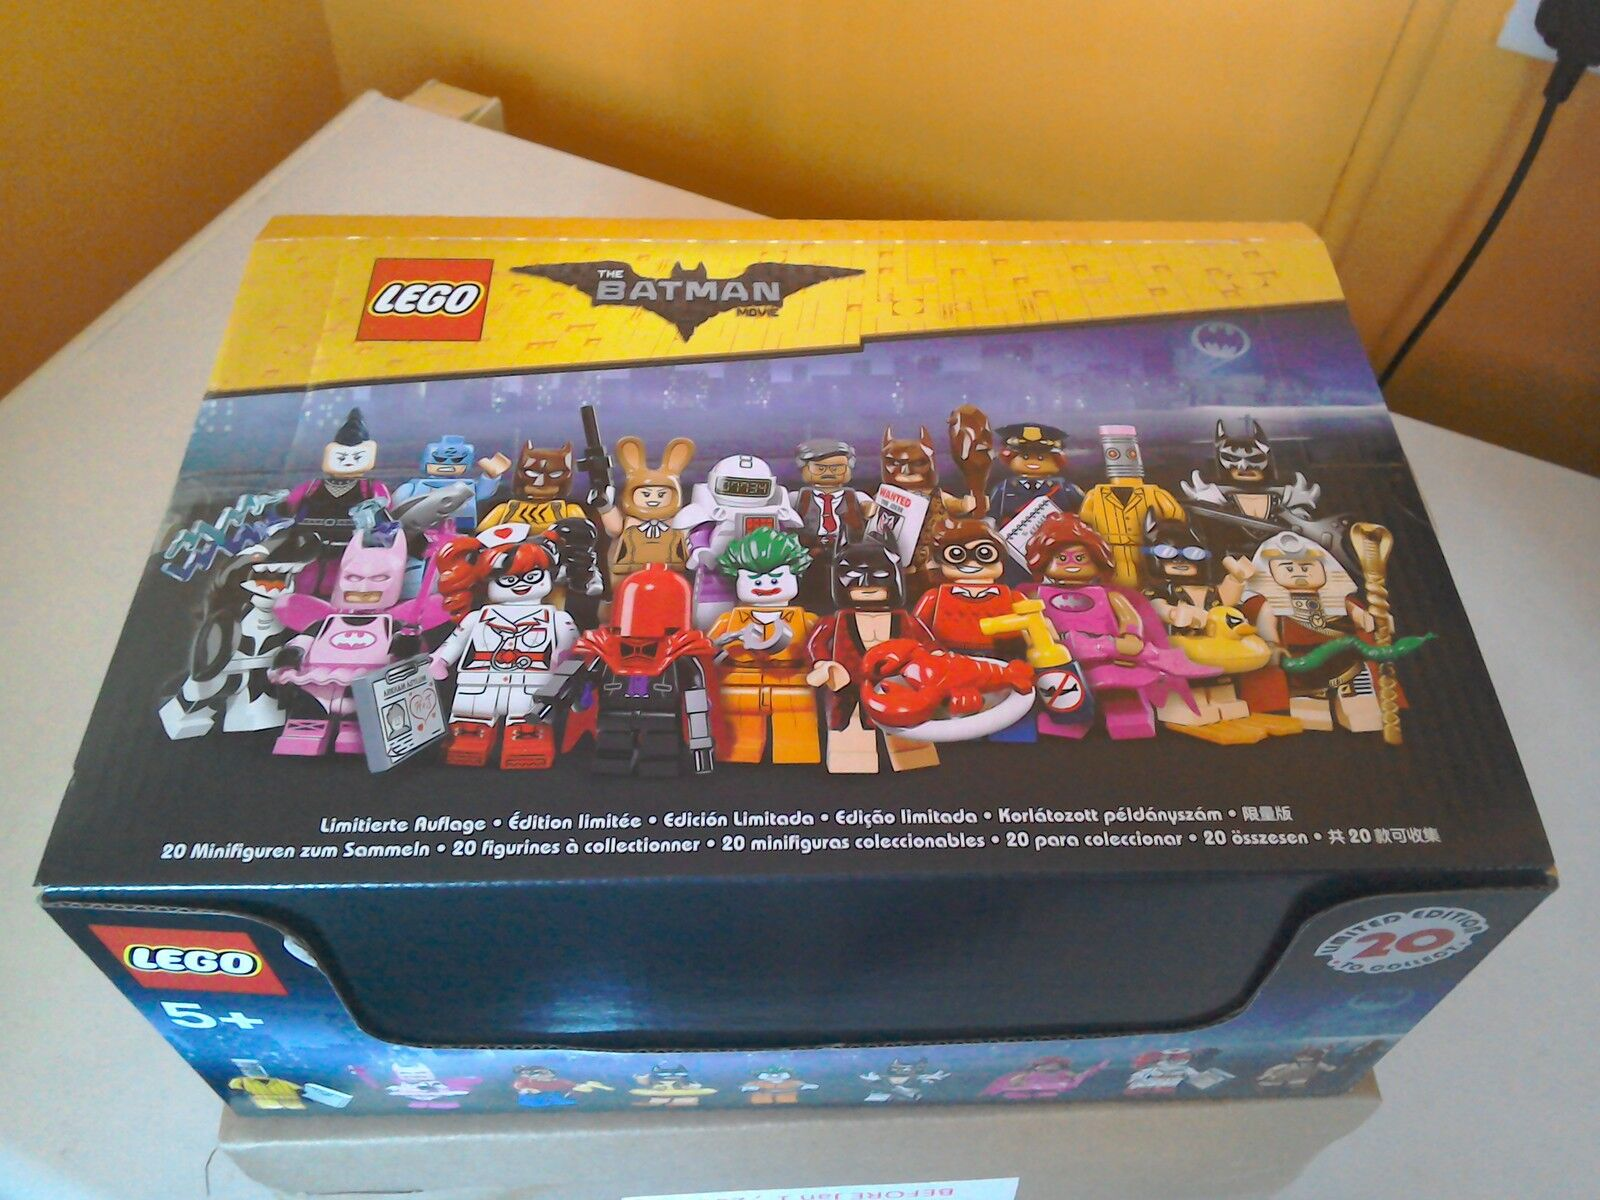 LEGO THE BATMAN MOVIE MINIFIGURES  SERIES 1 SHOP DISPLAY BOX  LIMITED EDITION